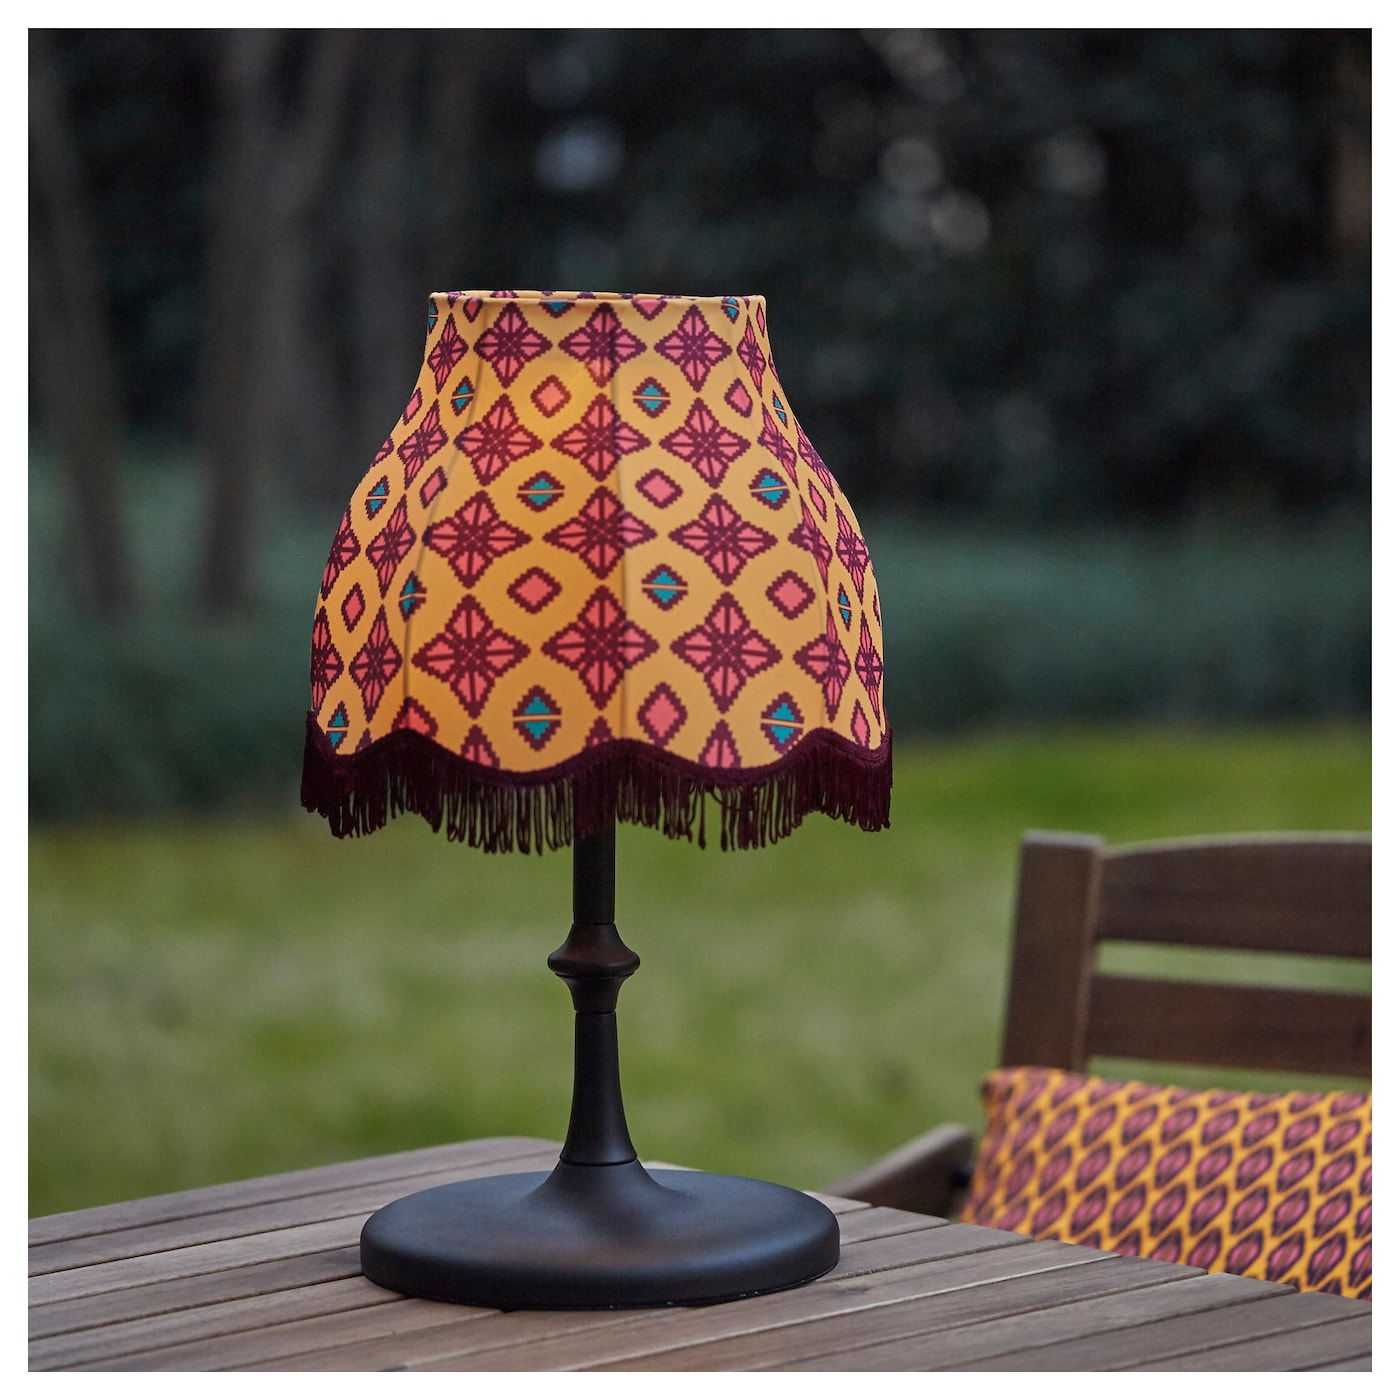 IKEA SOLVINDEN LED solar-powered table lamp Easy to use because no cables or plugs are needed.